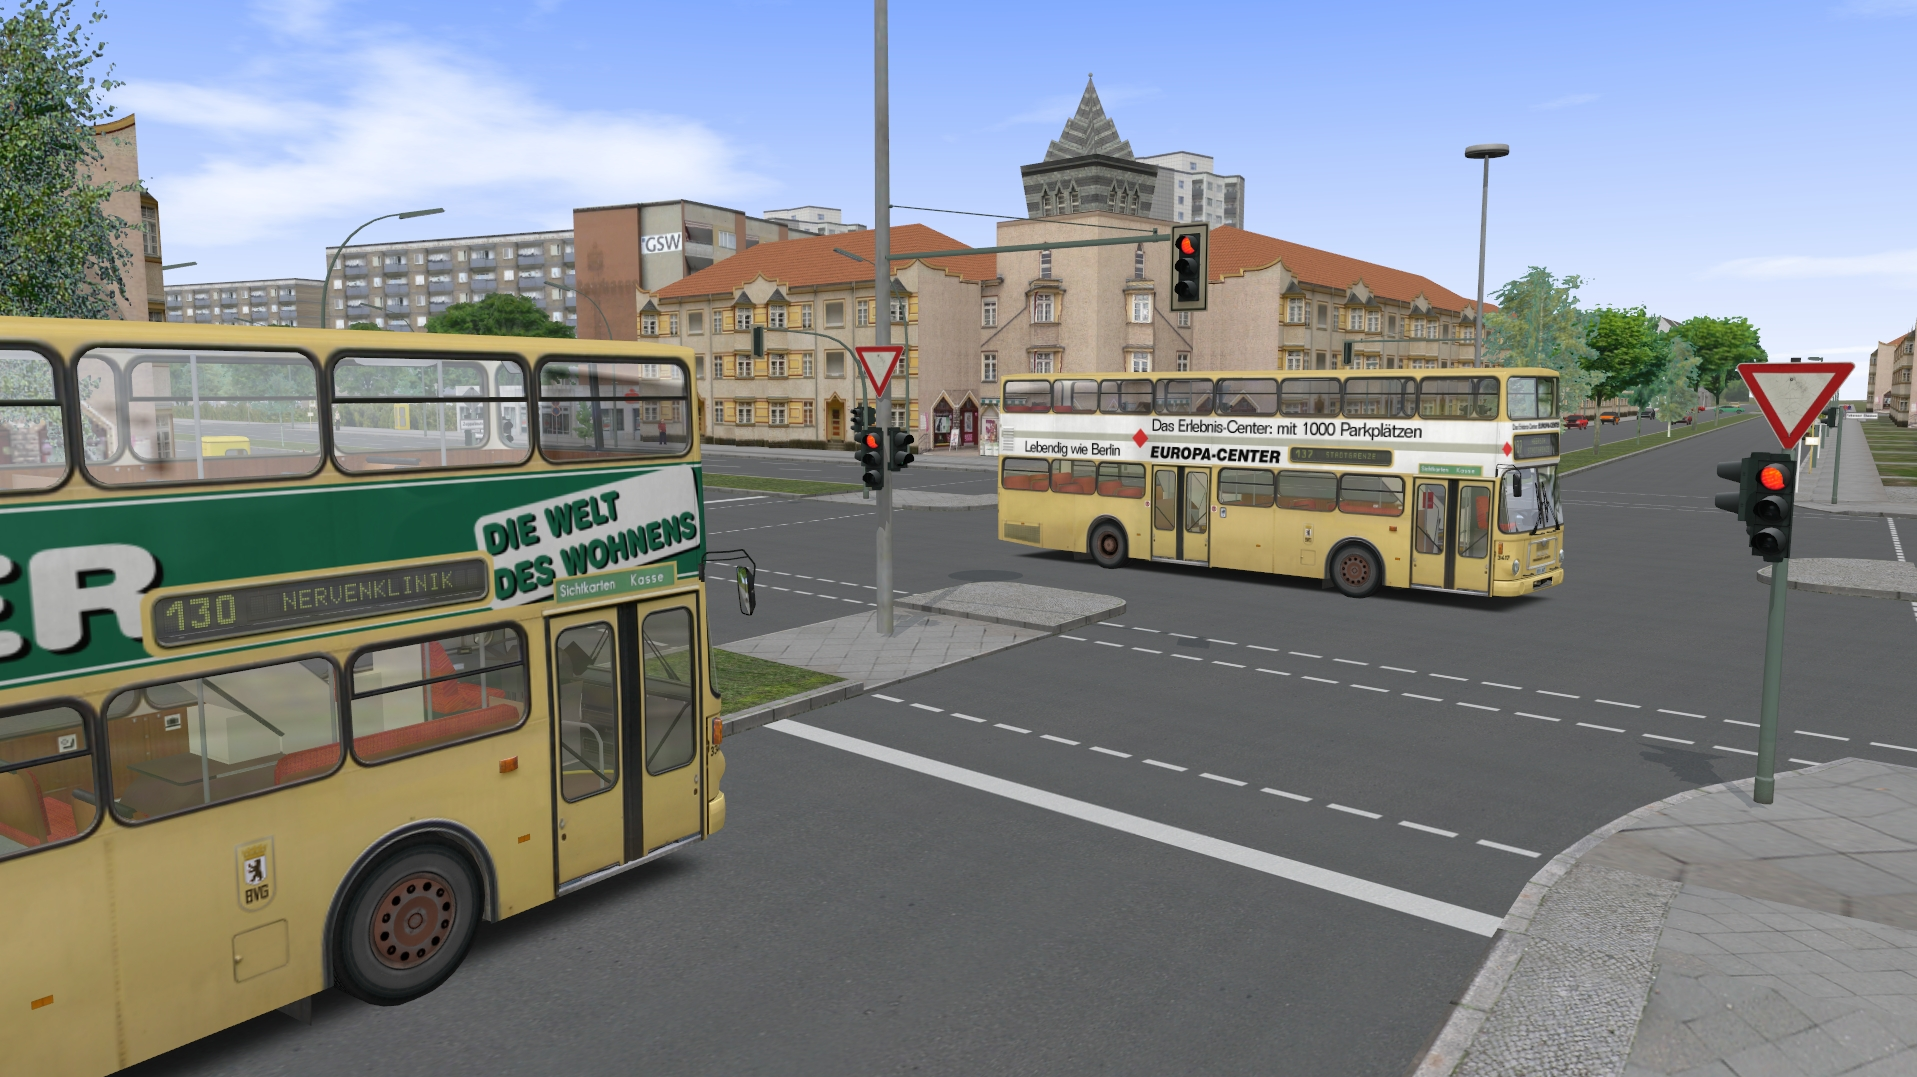 omsi bus simulator 2 03 simulator games mods download. Black Bedroom Furniture Sets. Home Design Ideas